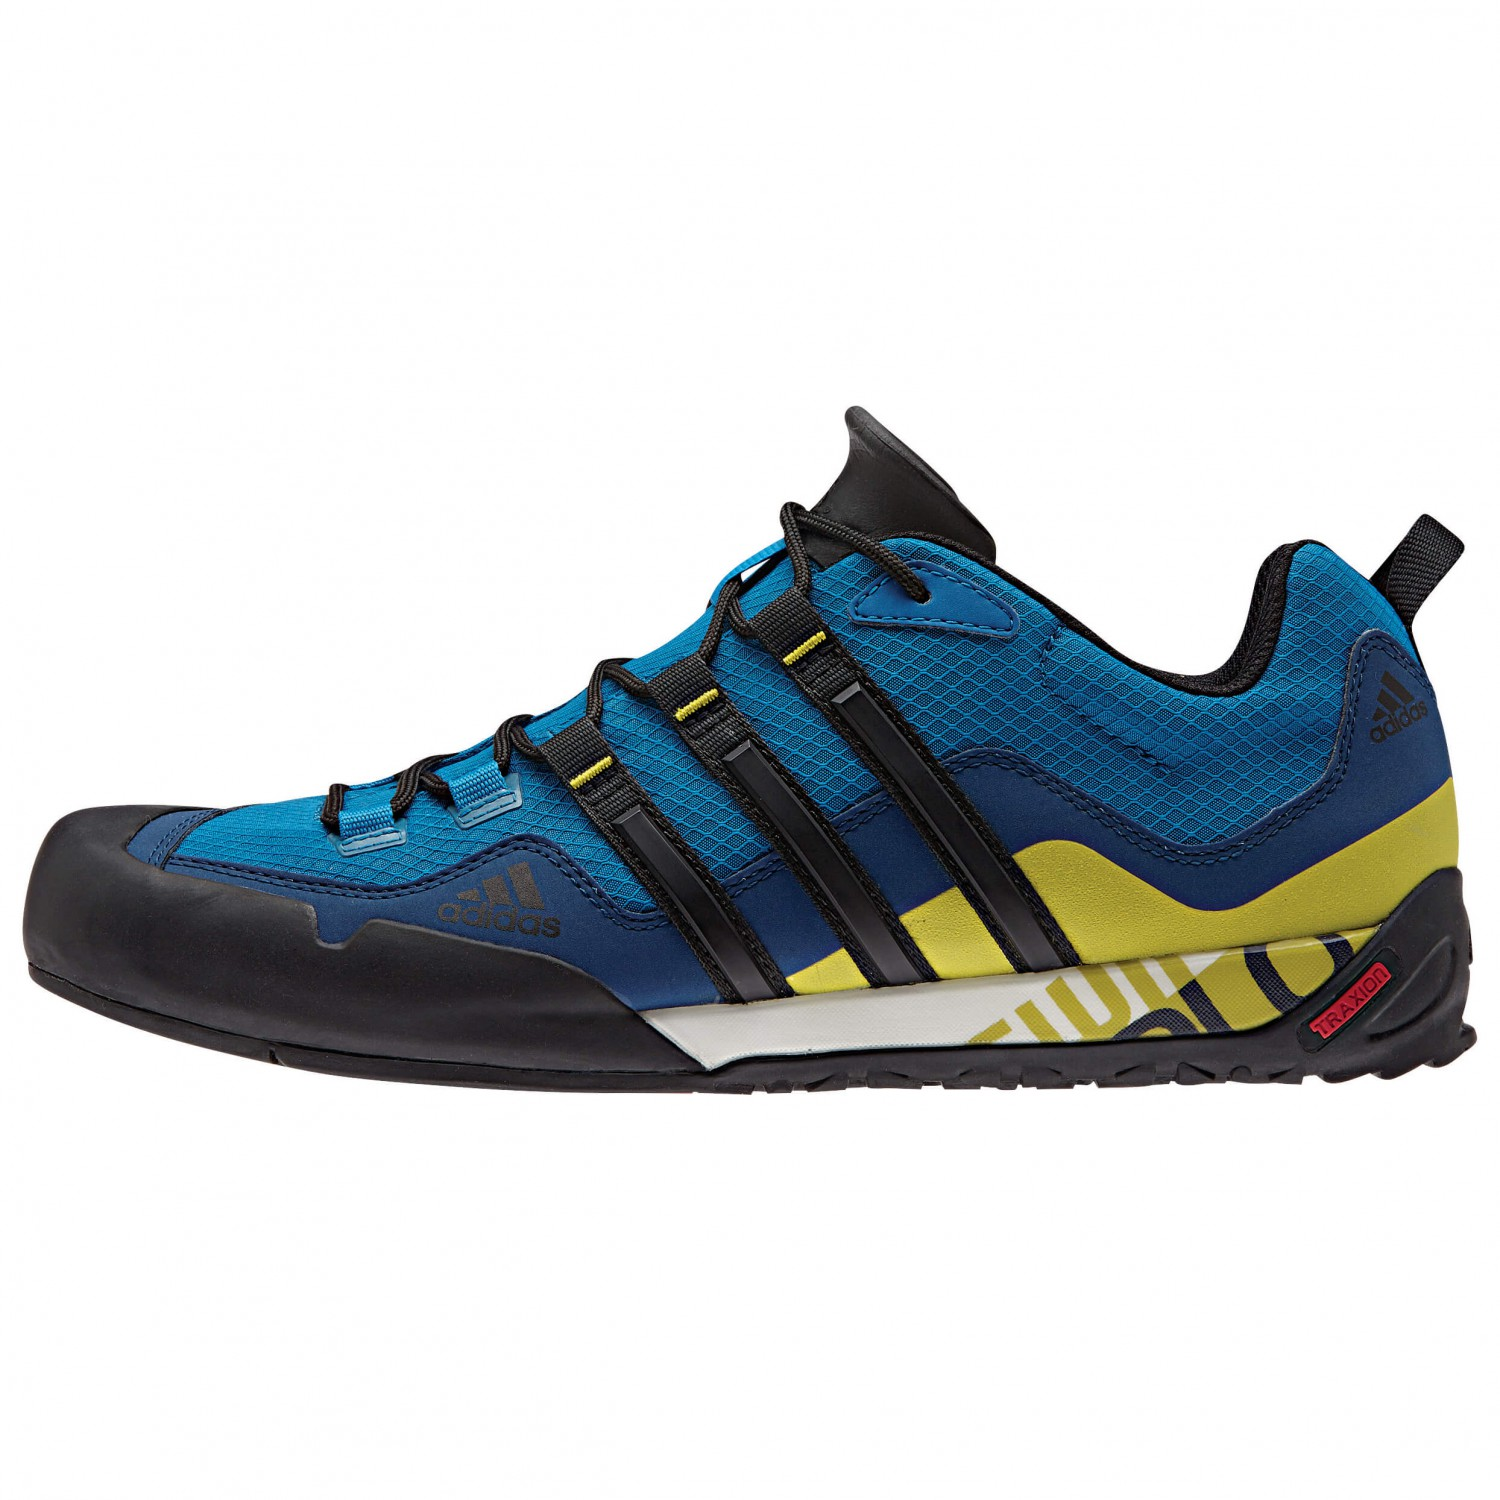 Adidas Terrex Swift Solo - Approach shoes   Free EU Delivery ...